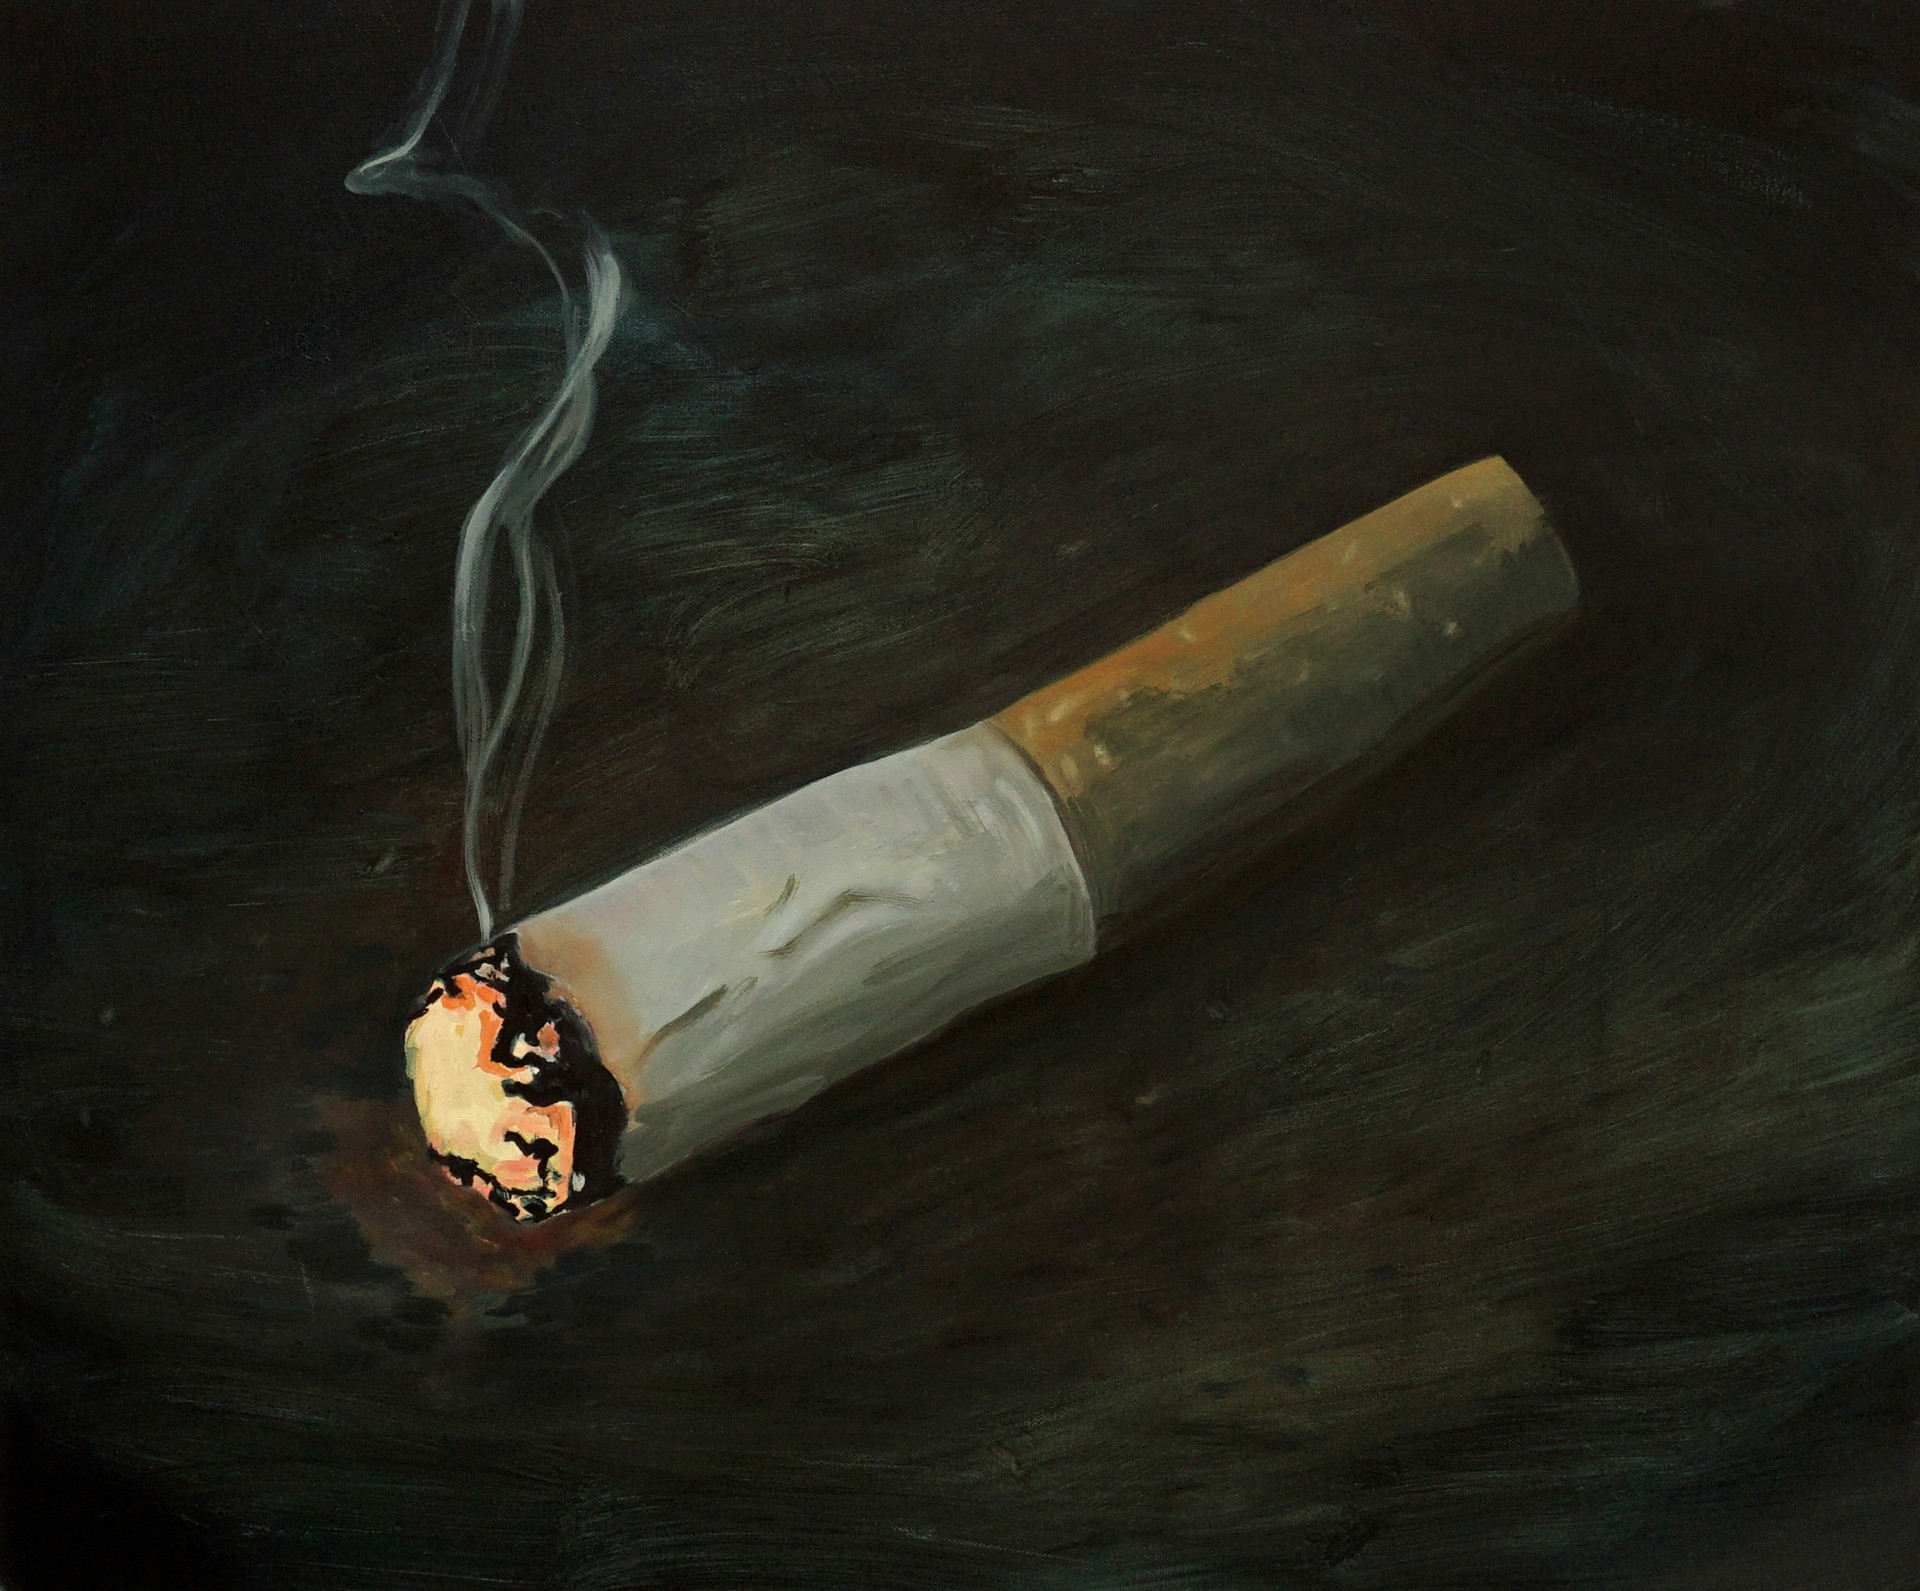 Ciggie, oil paint on canvas, 28 x 24 inches